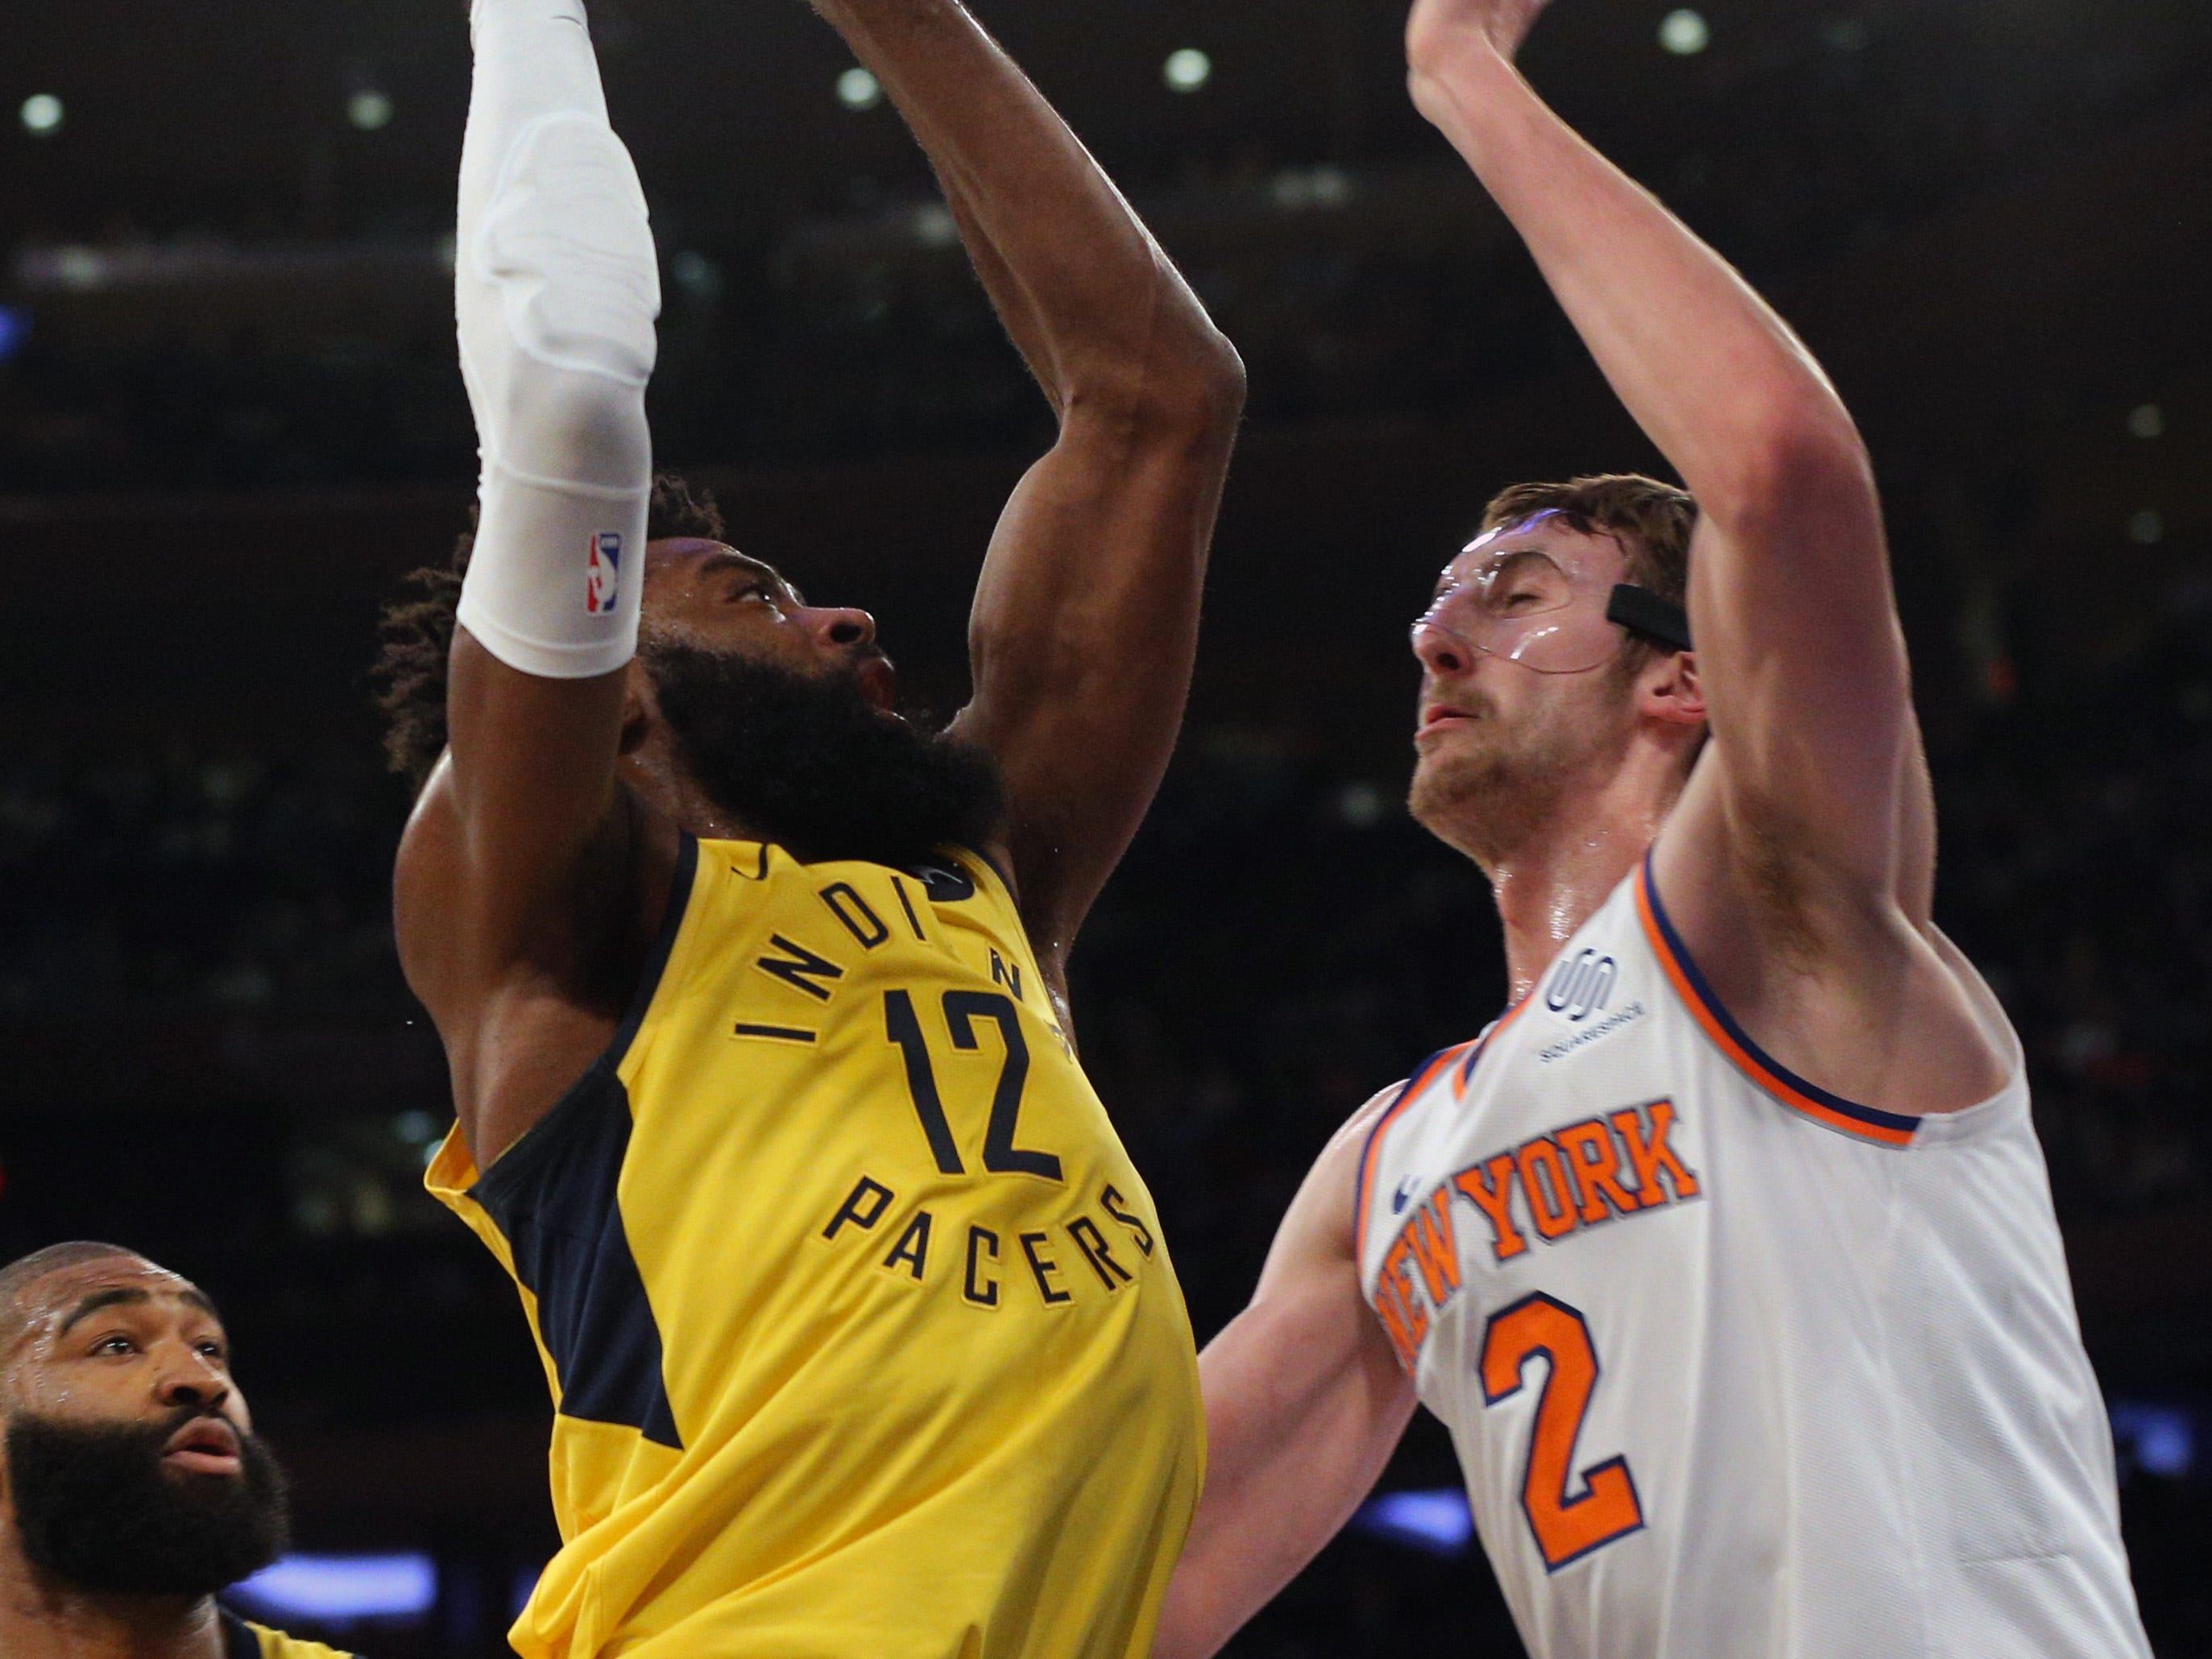 Jan 11, 2019; New York, NY, USA; Indiana Pacers guard Tyreke Evans (12) shoots against New York Knicks forward Luke Kornet (2) during the second quarter at Madison Square Garden. Mandatory Credit: Brad Penner-USA TODAY Sports